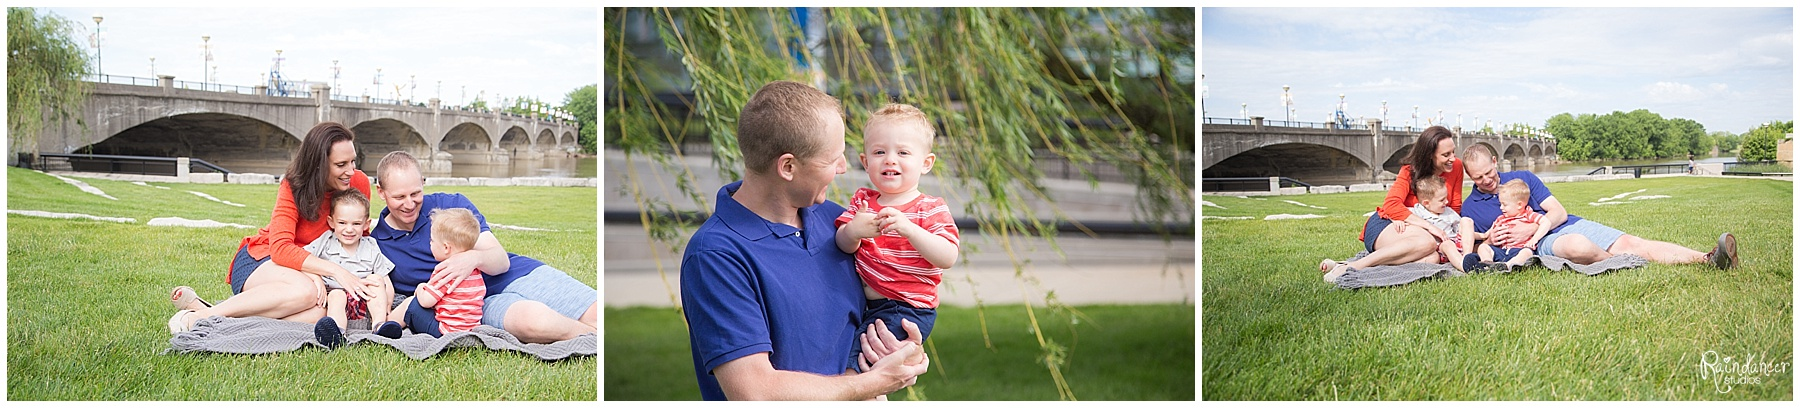 Indianapolis family photographer, Indianapolis family photography, Indy family photographer, Indy family photography, Indy children photographer, Indianapolis children photographer, Indianapolis lifestyle photographer, Indy lifestyle photographer, Indianapolis lifestyle photography, Indy lifestyle photography,